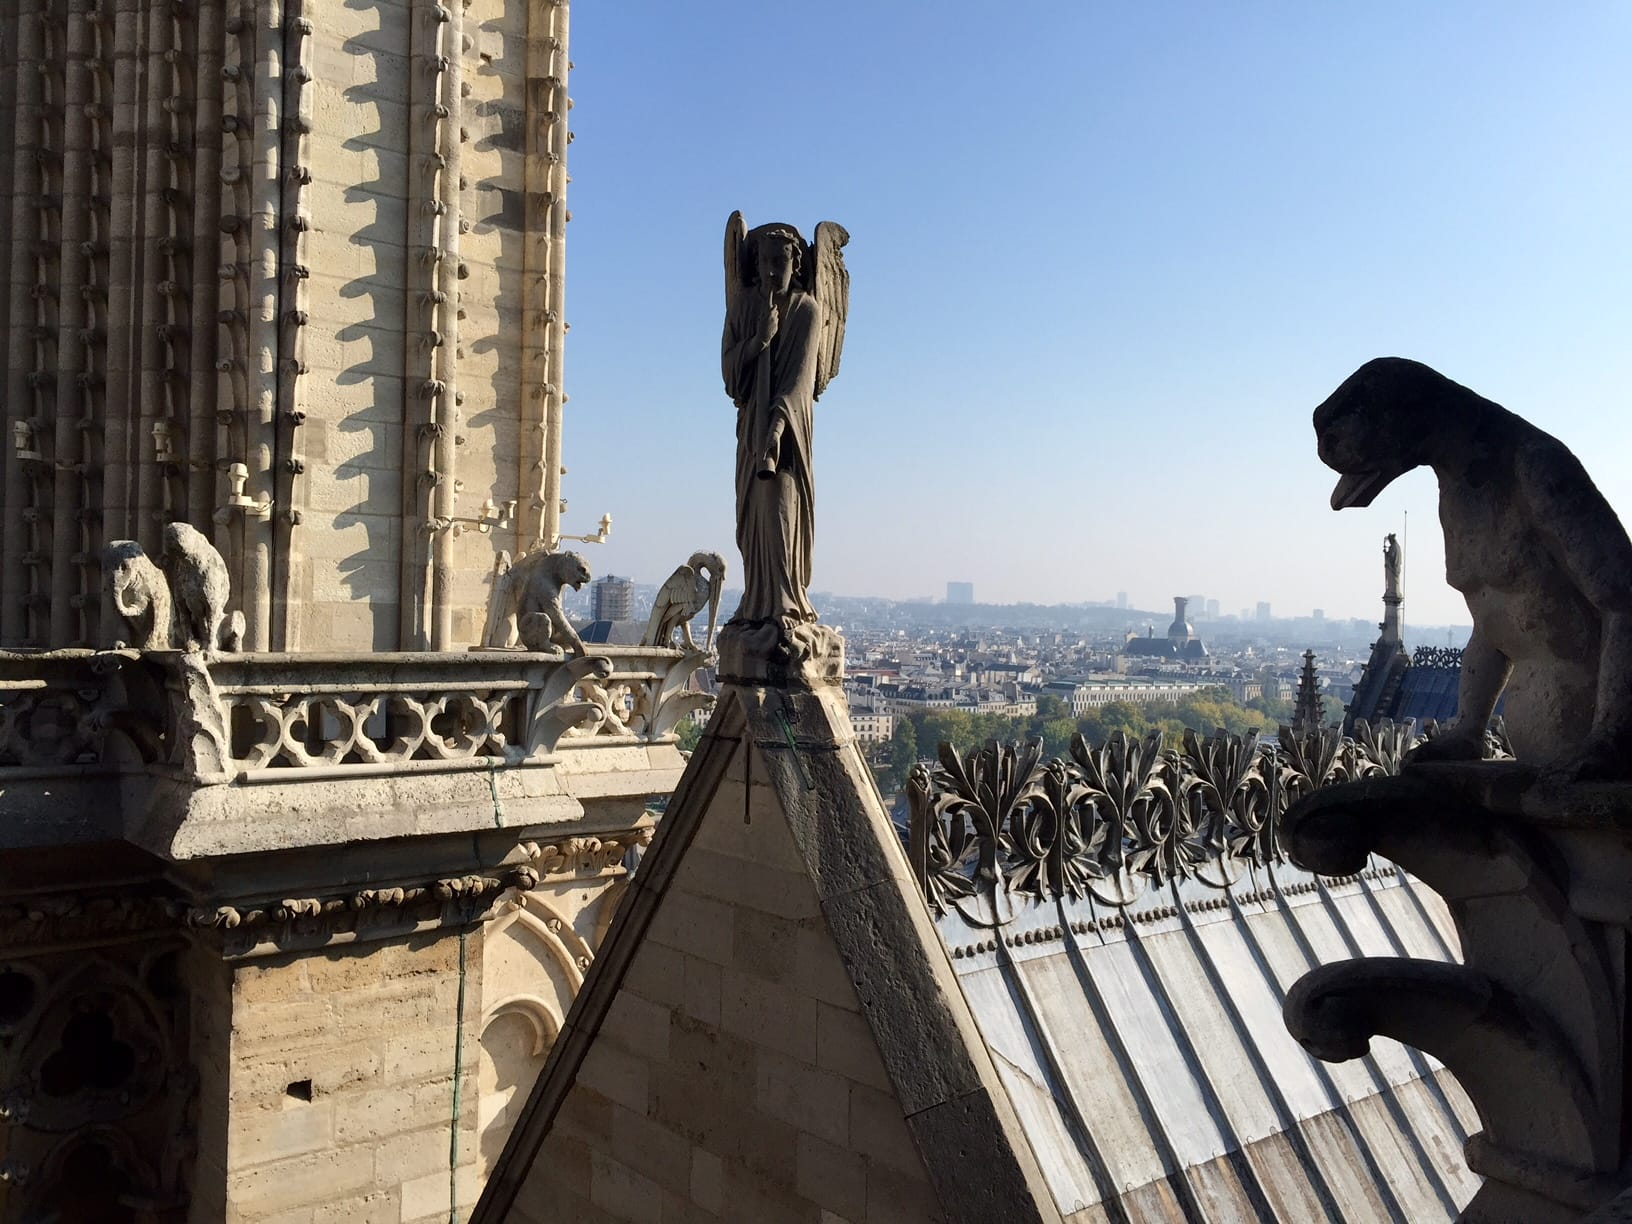 Morning with Notre Dame Gargoyles in Paris